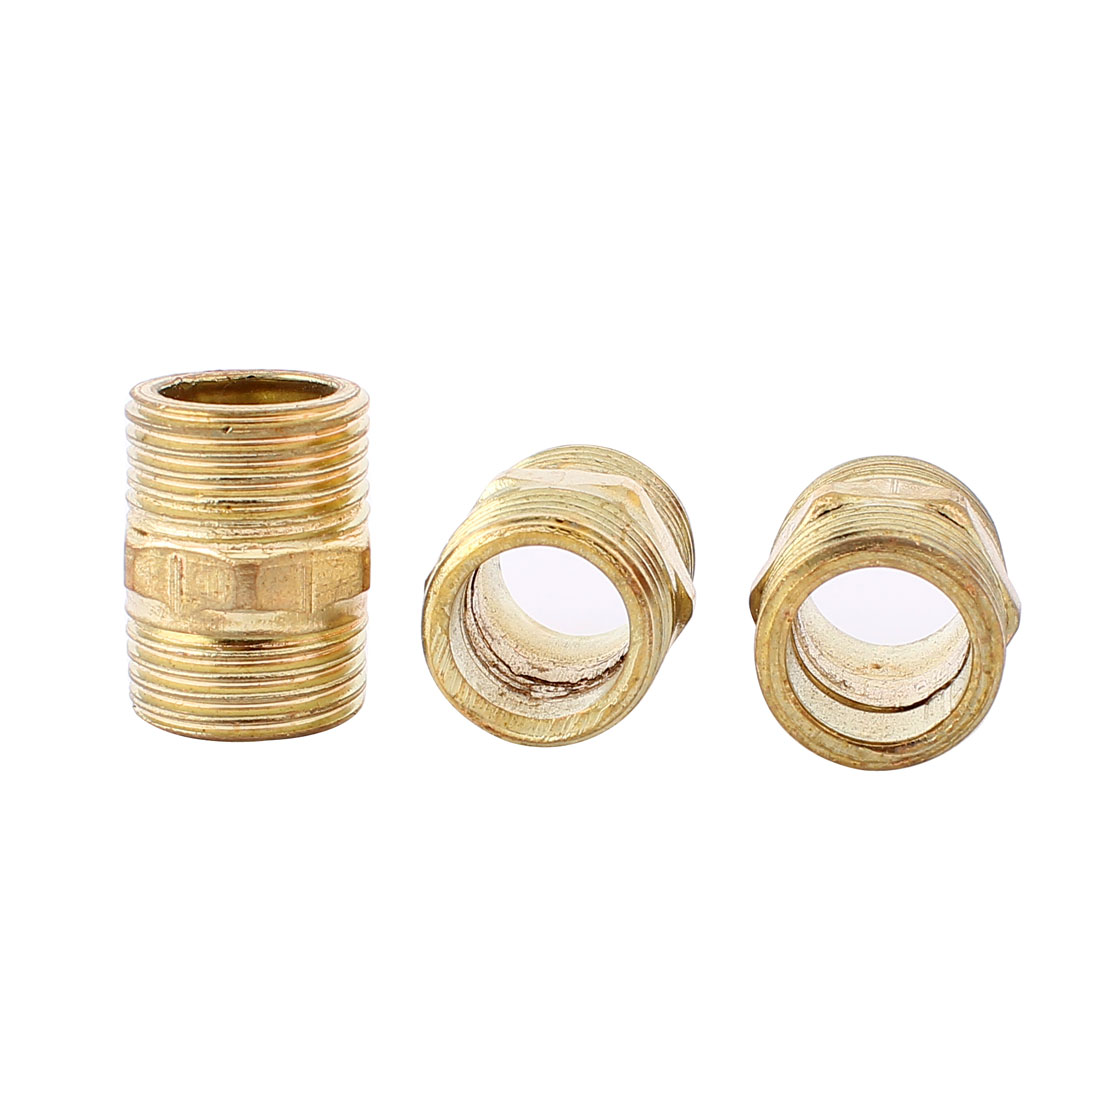 3Pcs Gold Tone Brass 1/2BSP x 1/2BSP Male Hex Nipple Connector Adapter 27mm Long